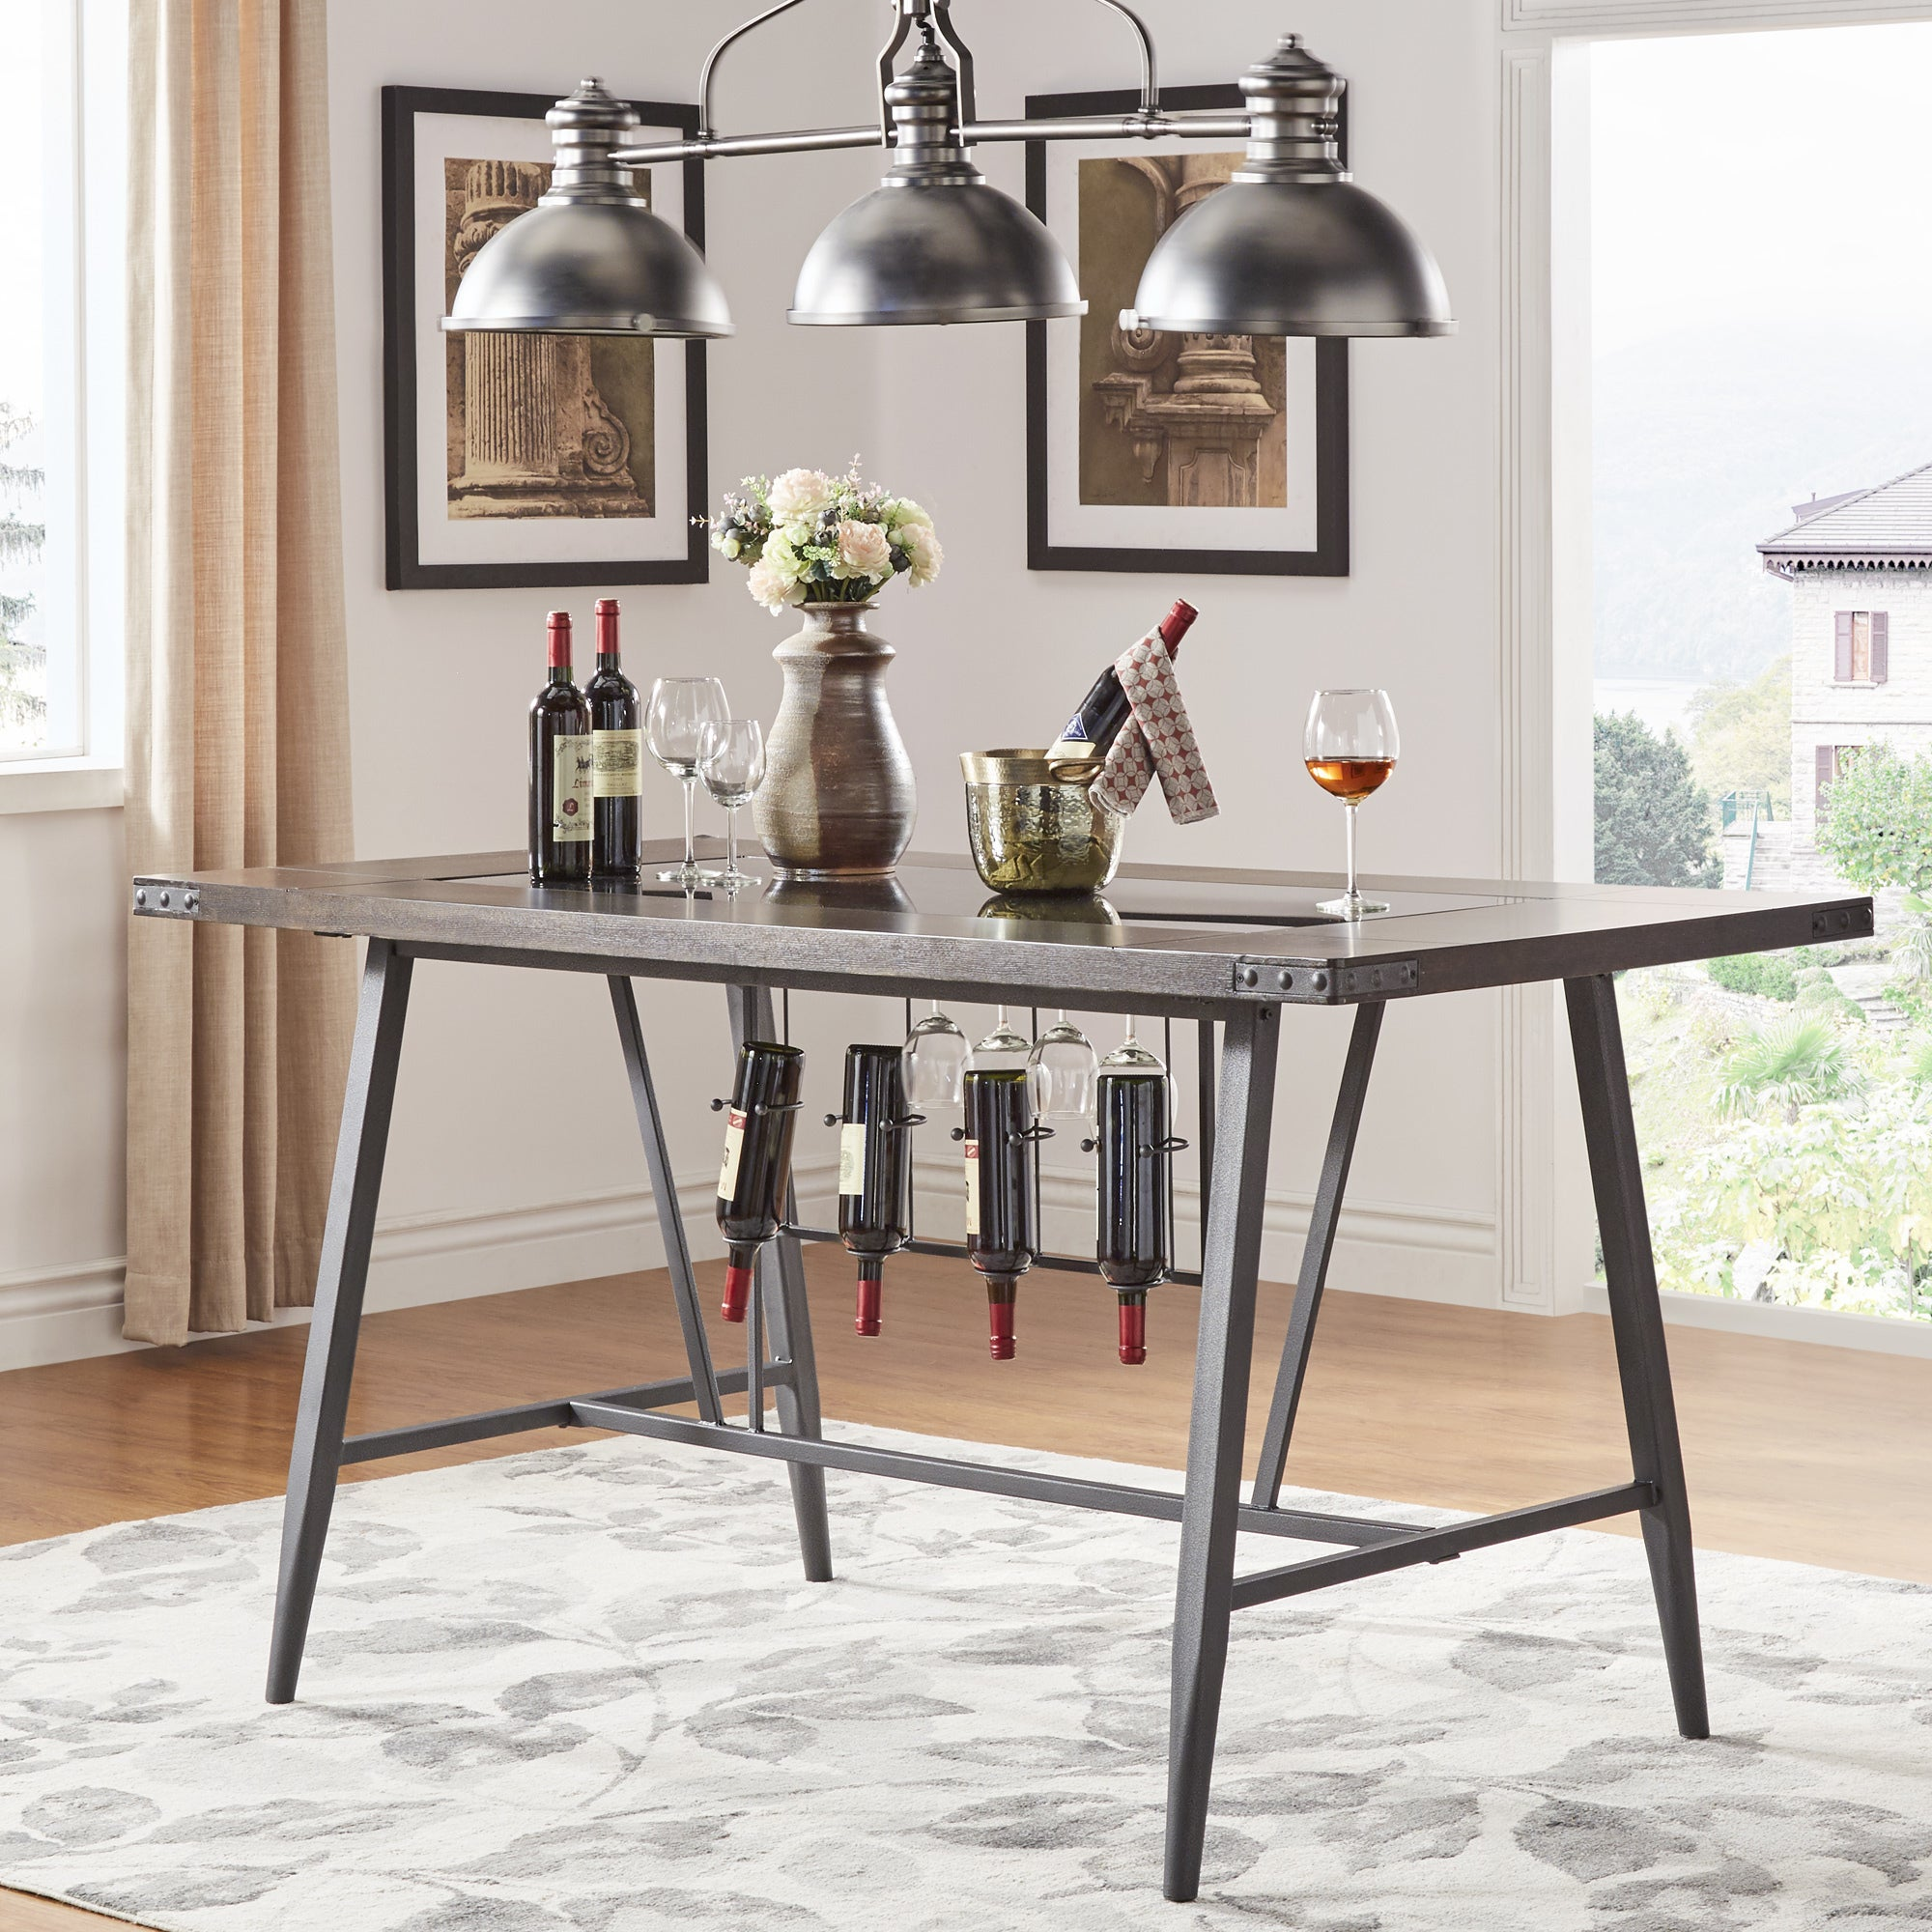 Harley Counter Height Dining Table with Wine Rack by iNSPIRE Q Modern -  Free Shipping Today - Overstock.com - 24820429